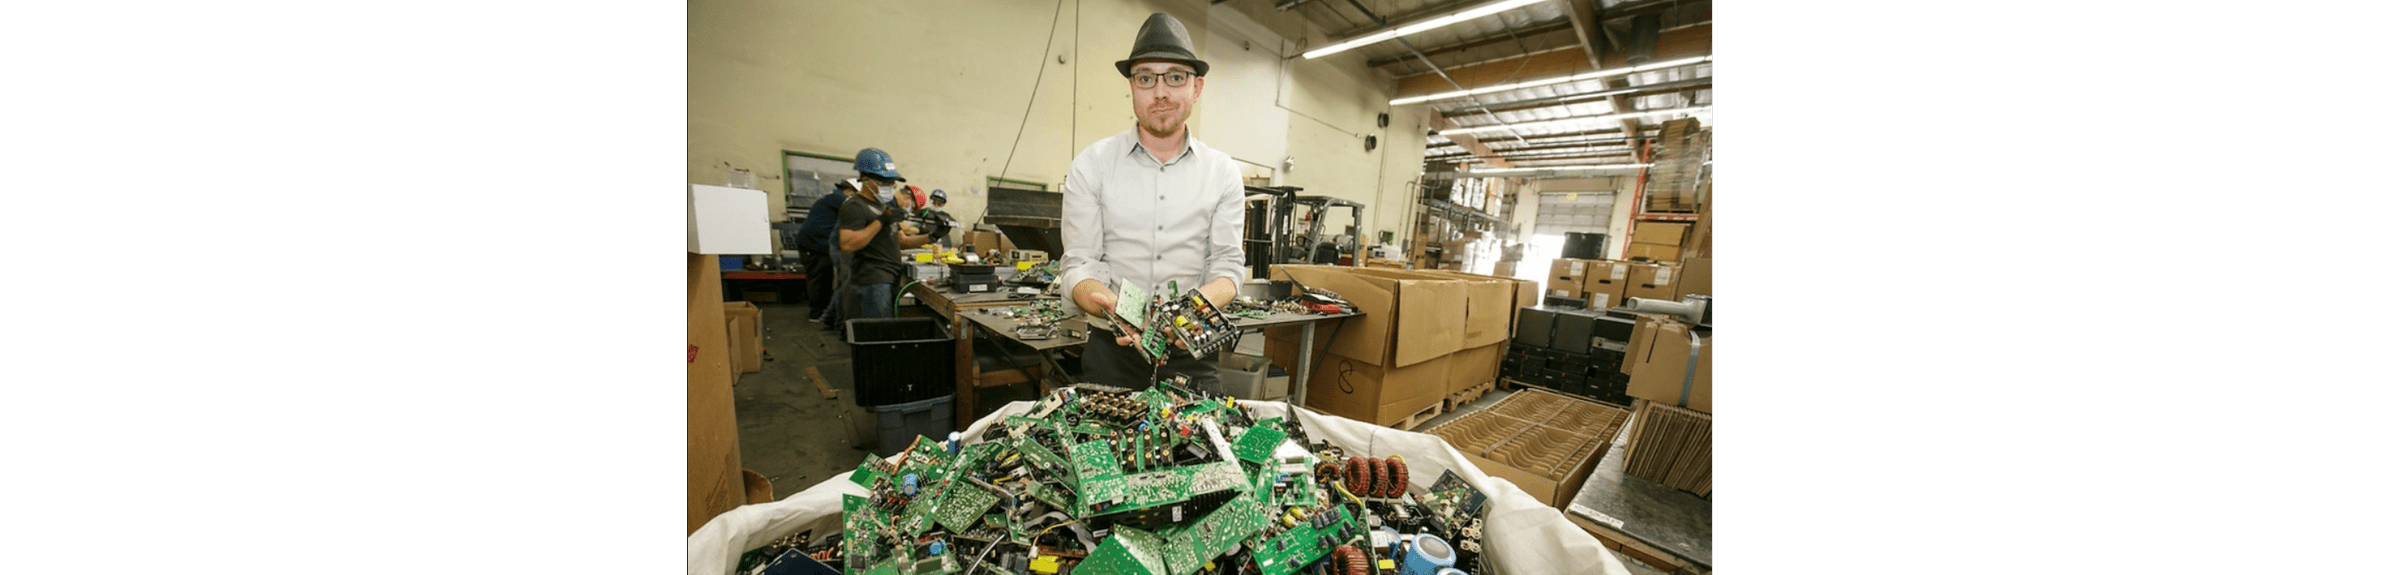 E-Waste Recycler Who Built Electric Car from Recycled Trash Expands Business